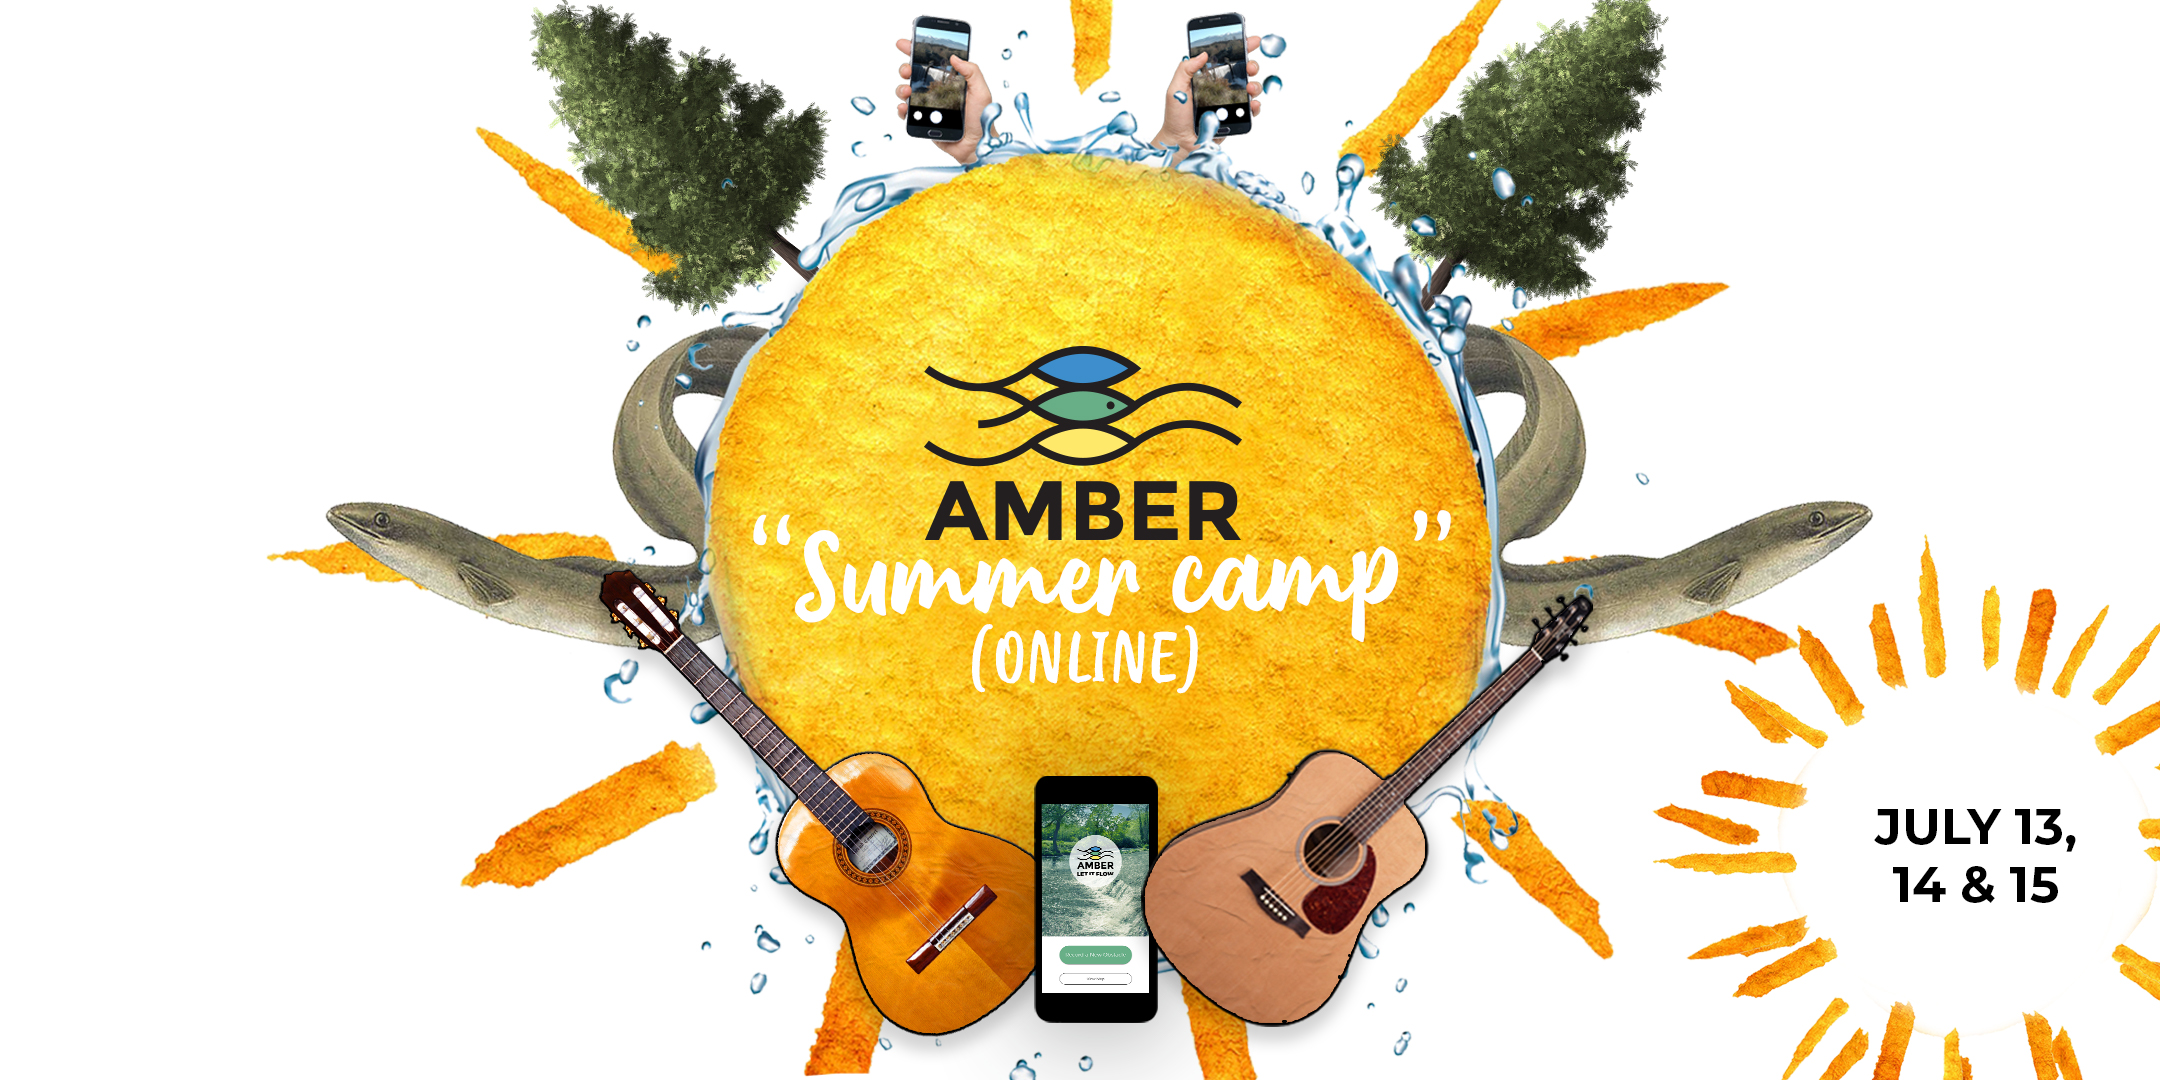 AMBER_Summercamp_Banner_2